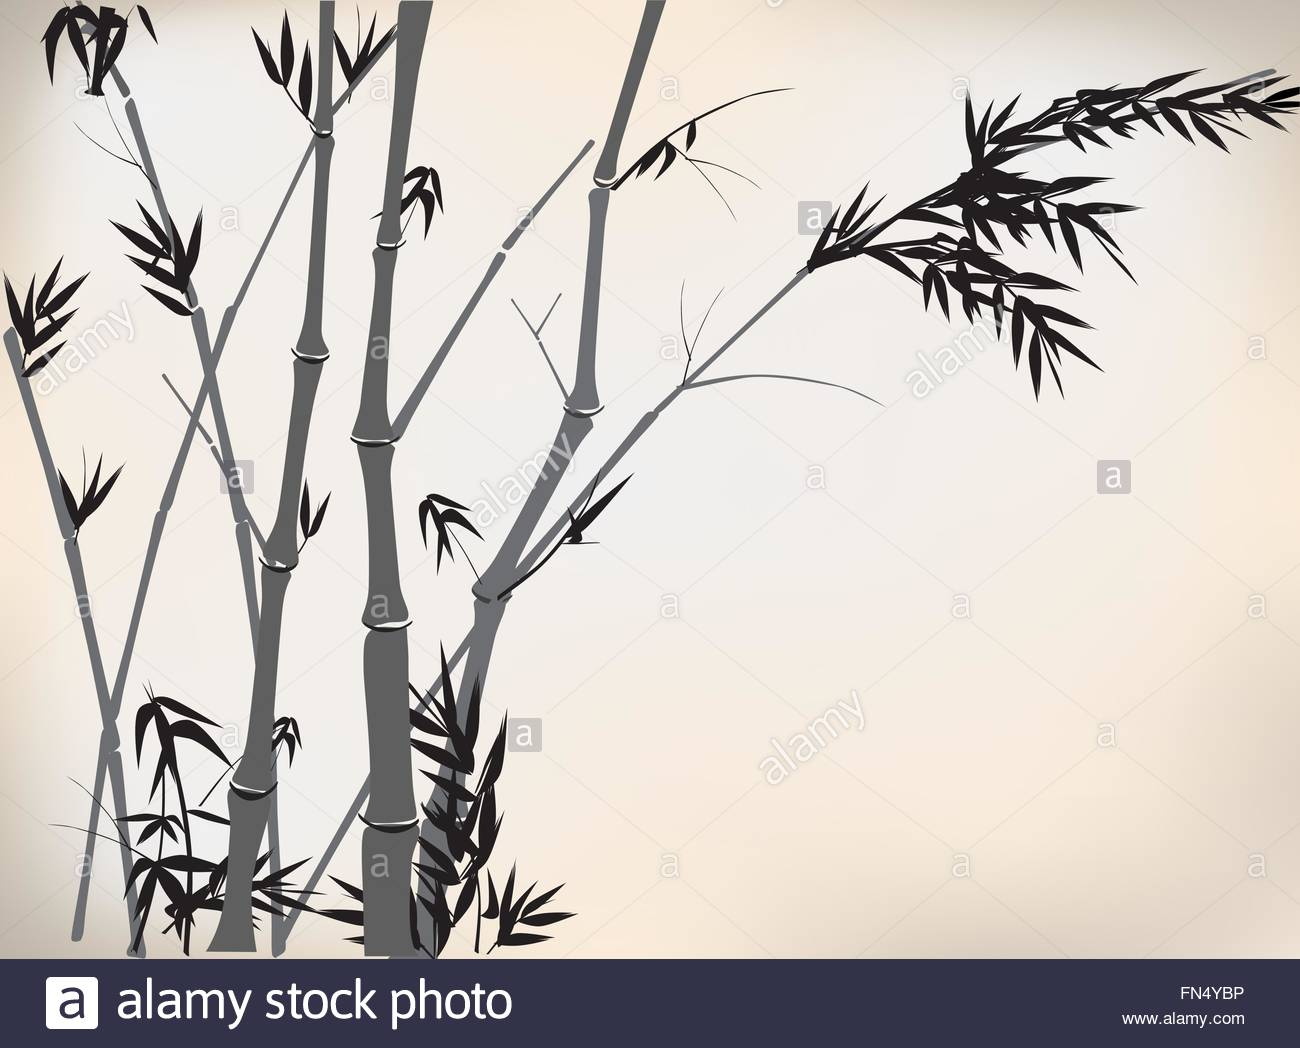 1300x1048 Old Chinese Bamboo Hand Drawing Stock Vector Art Amp Illustration